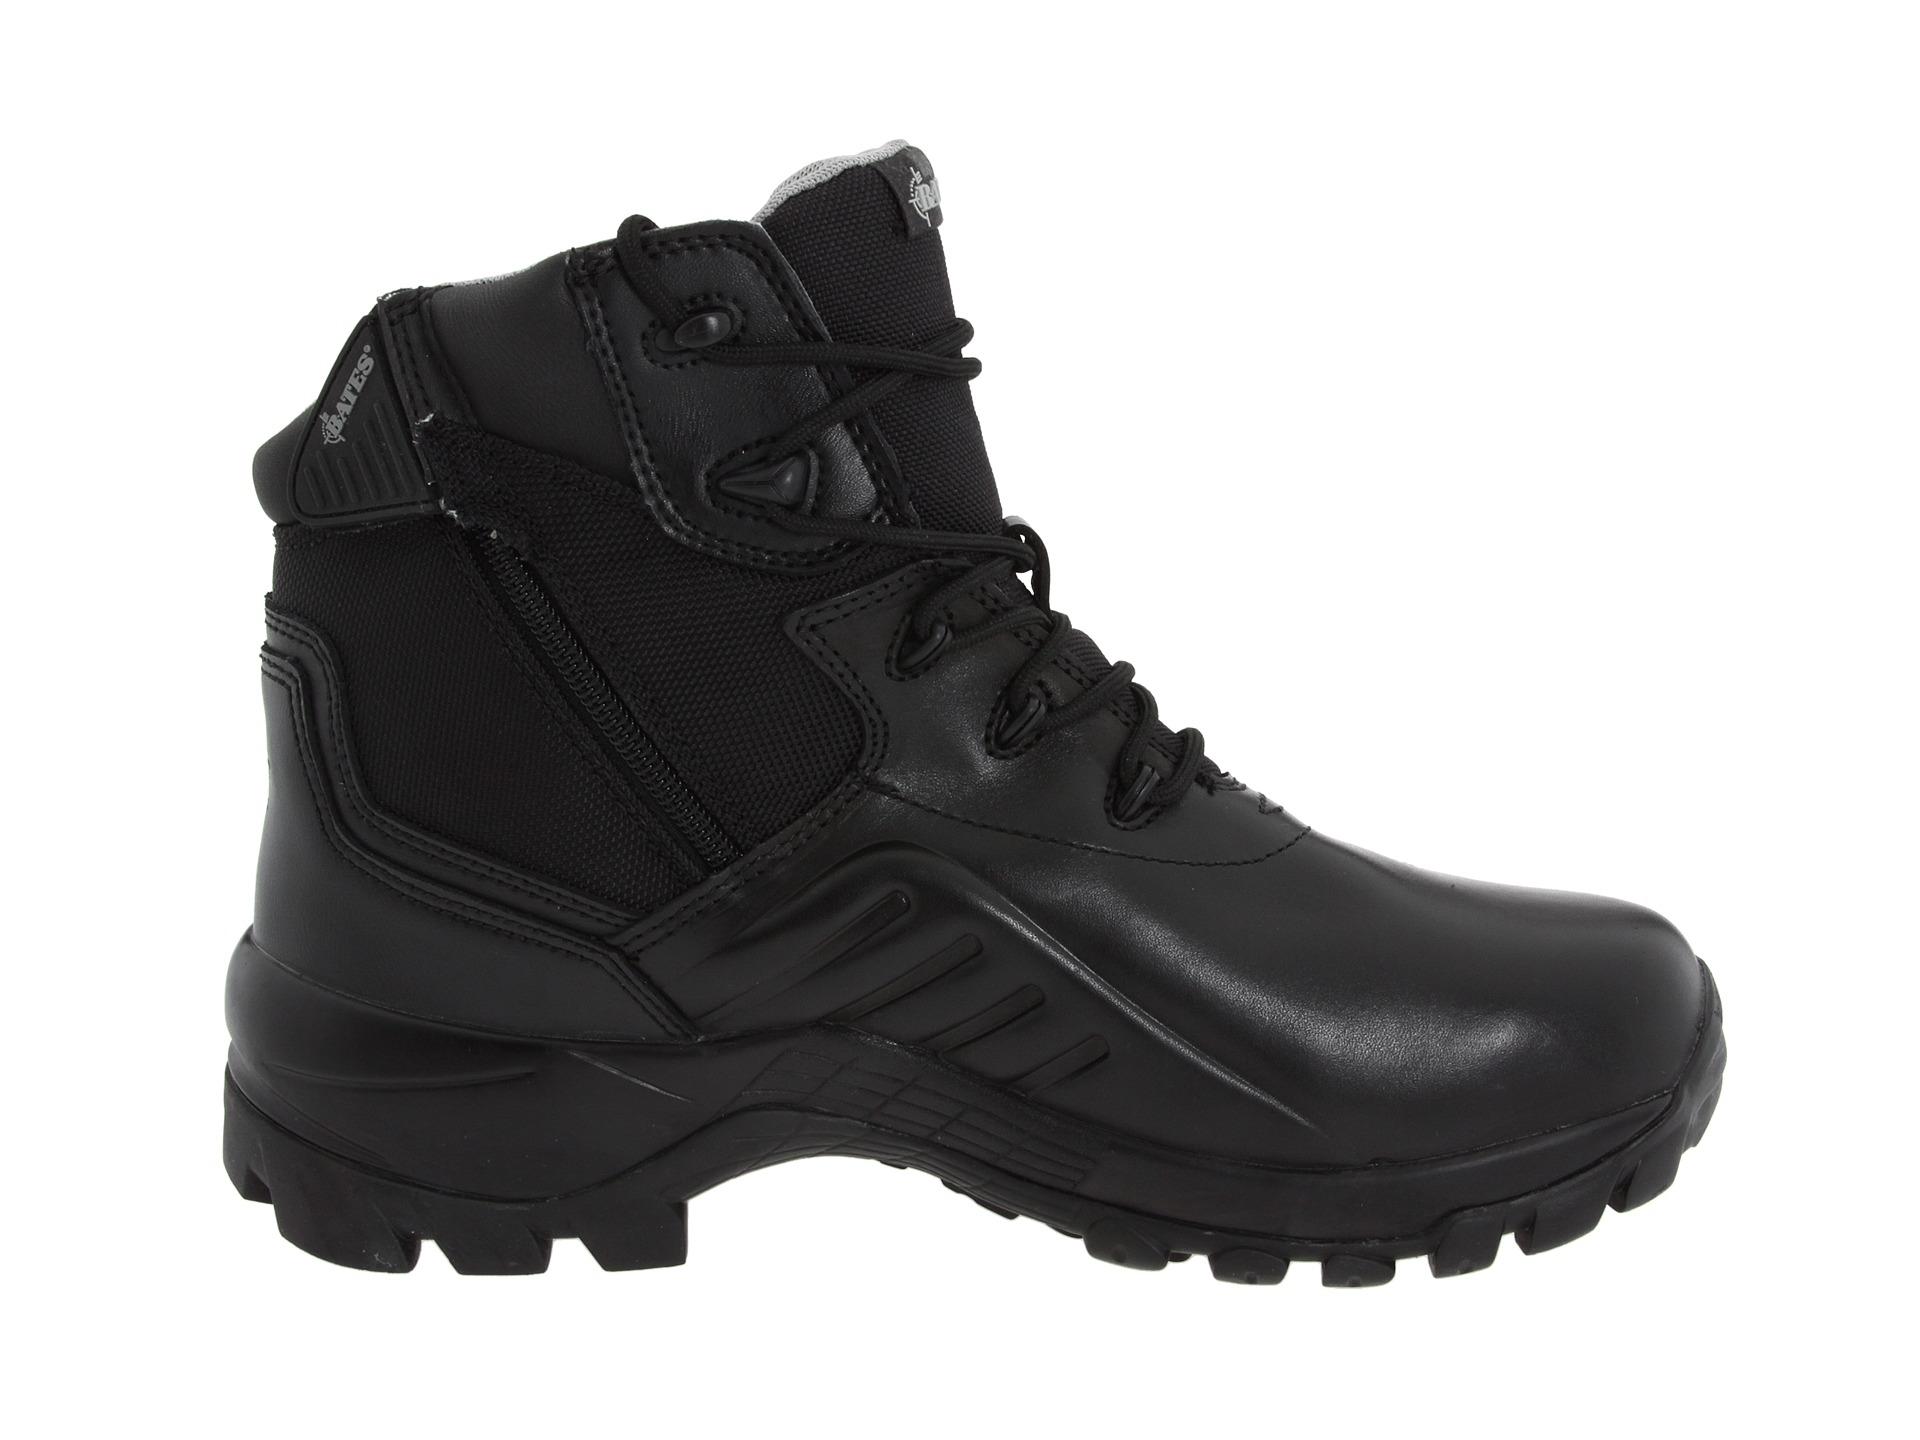 Shoes for men online. Where can i buy bates boots